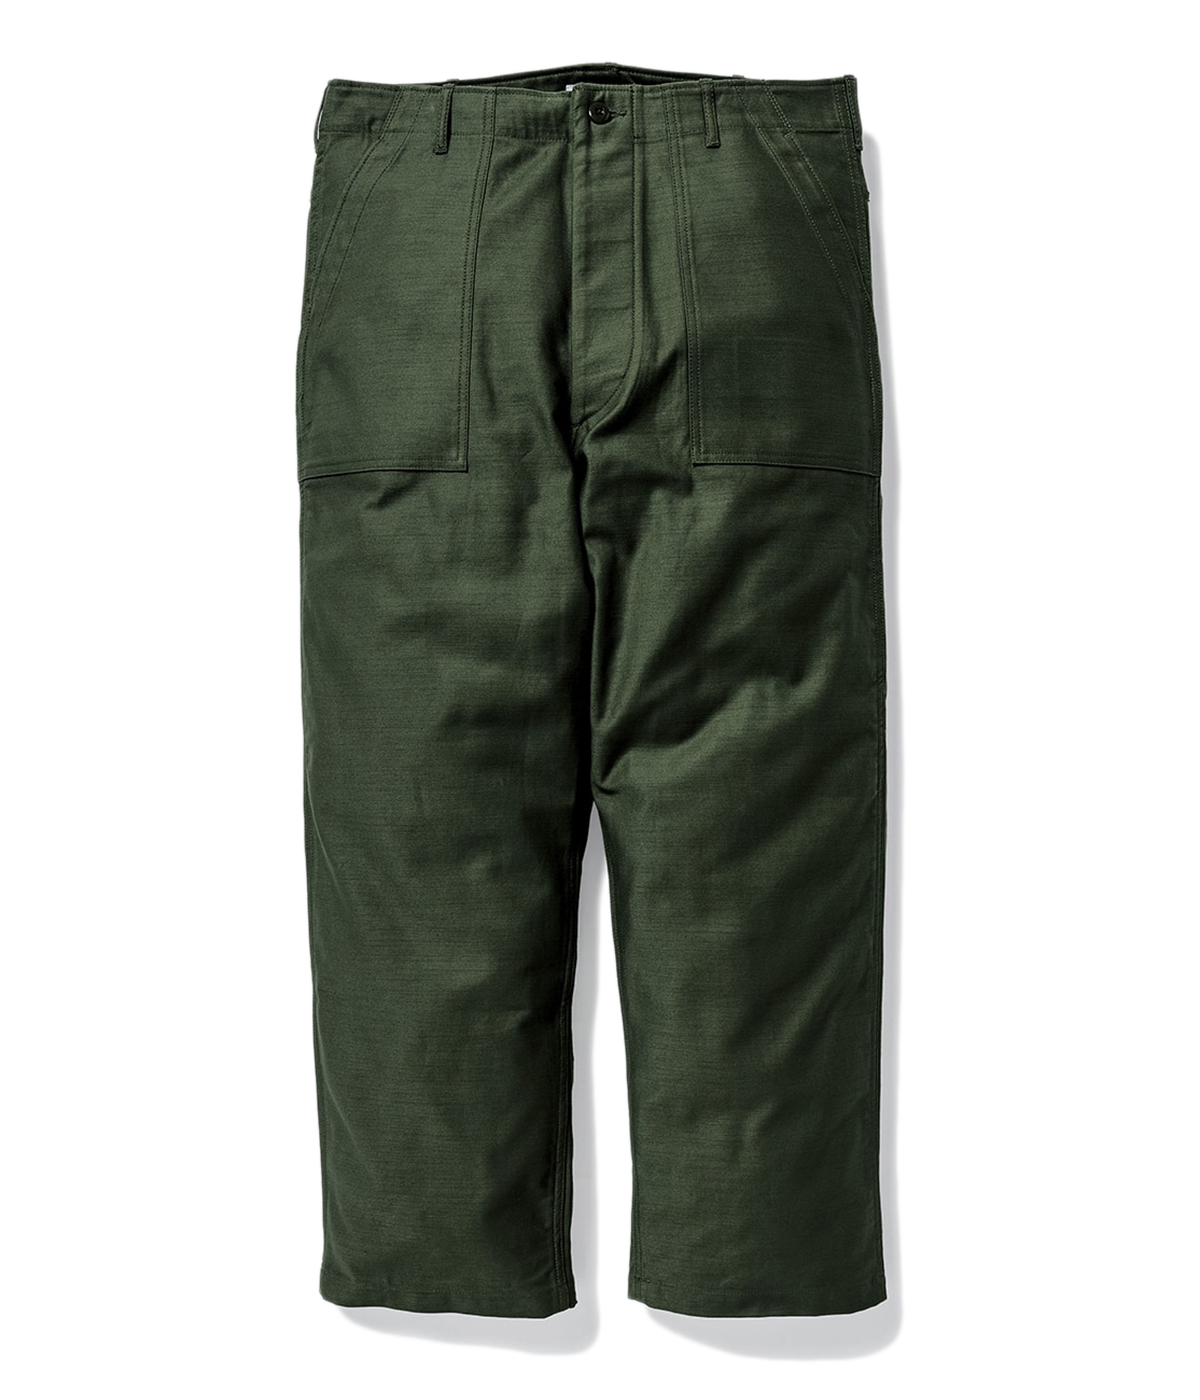 WMILL-TROUSER 02 / TROUSERS. COTTON. SATIN